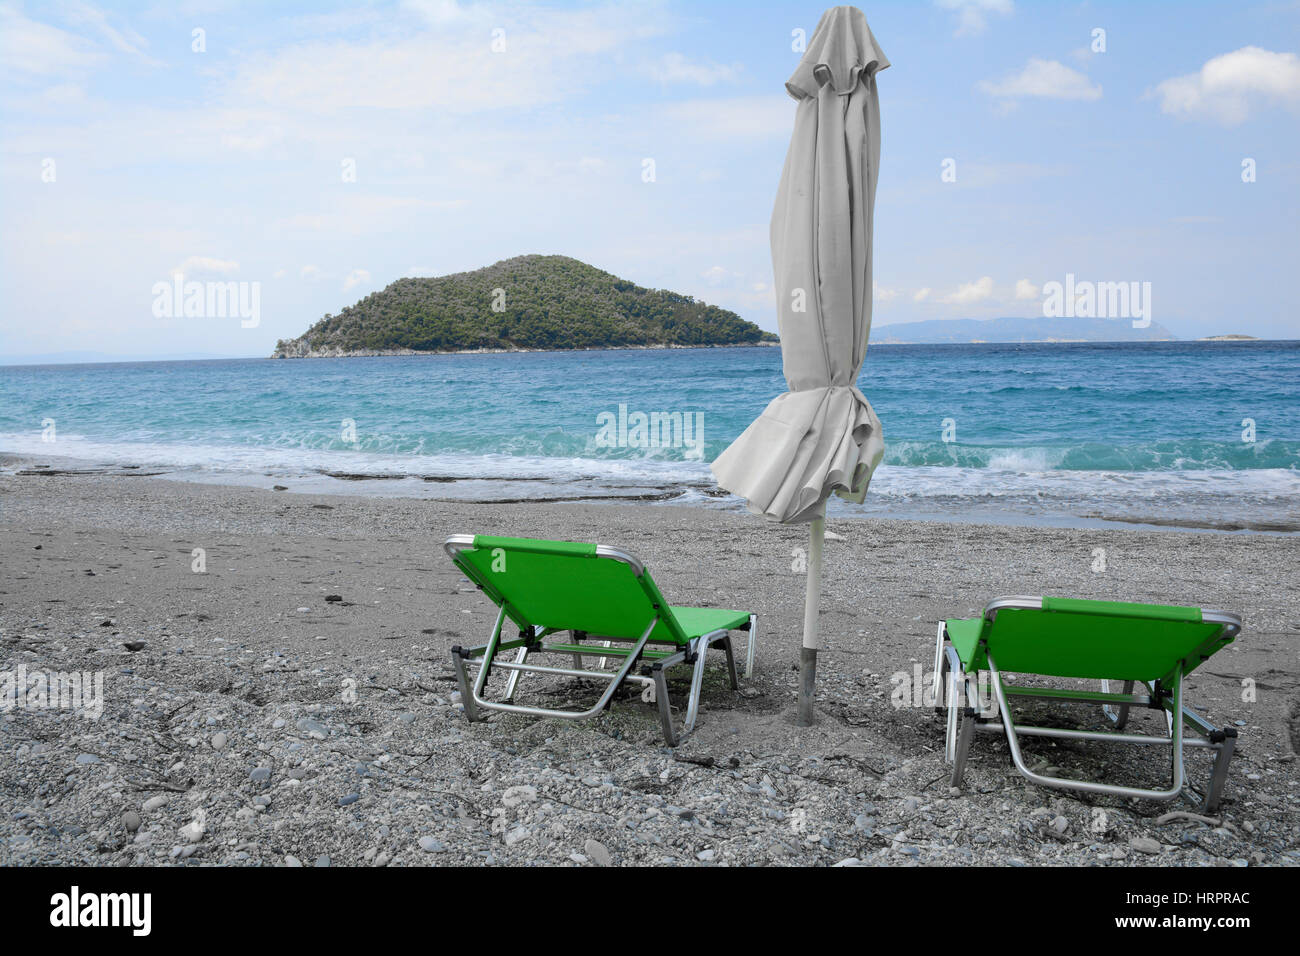 Green seats on the beach - Stock Image